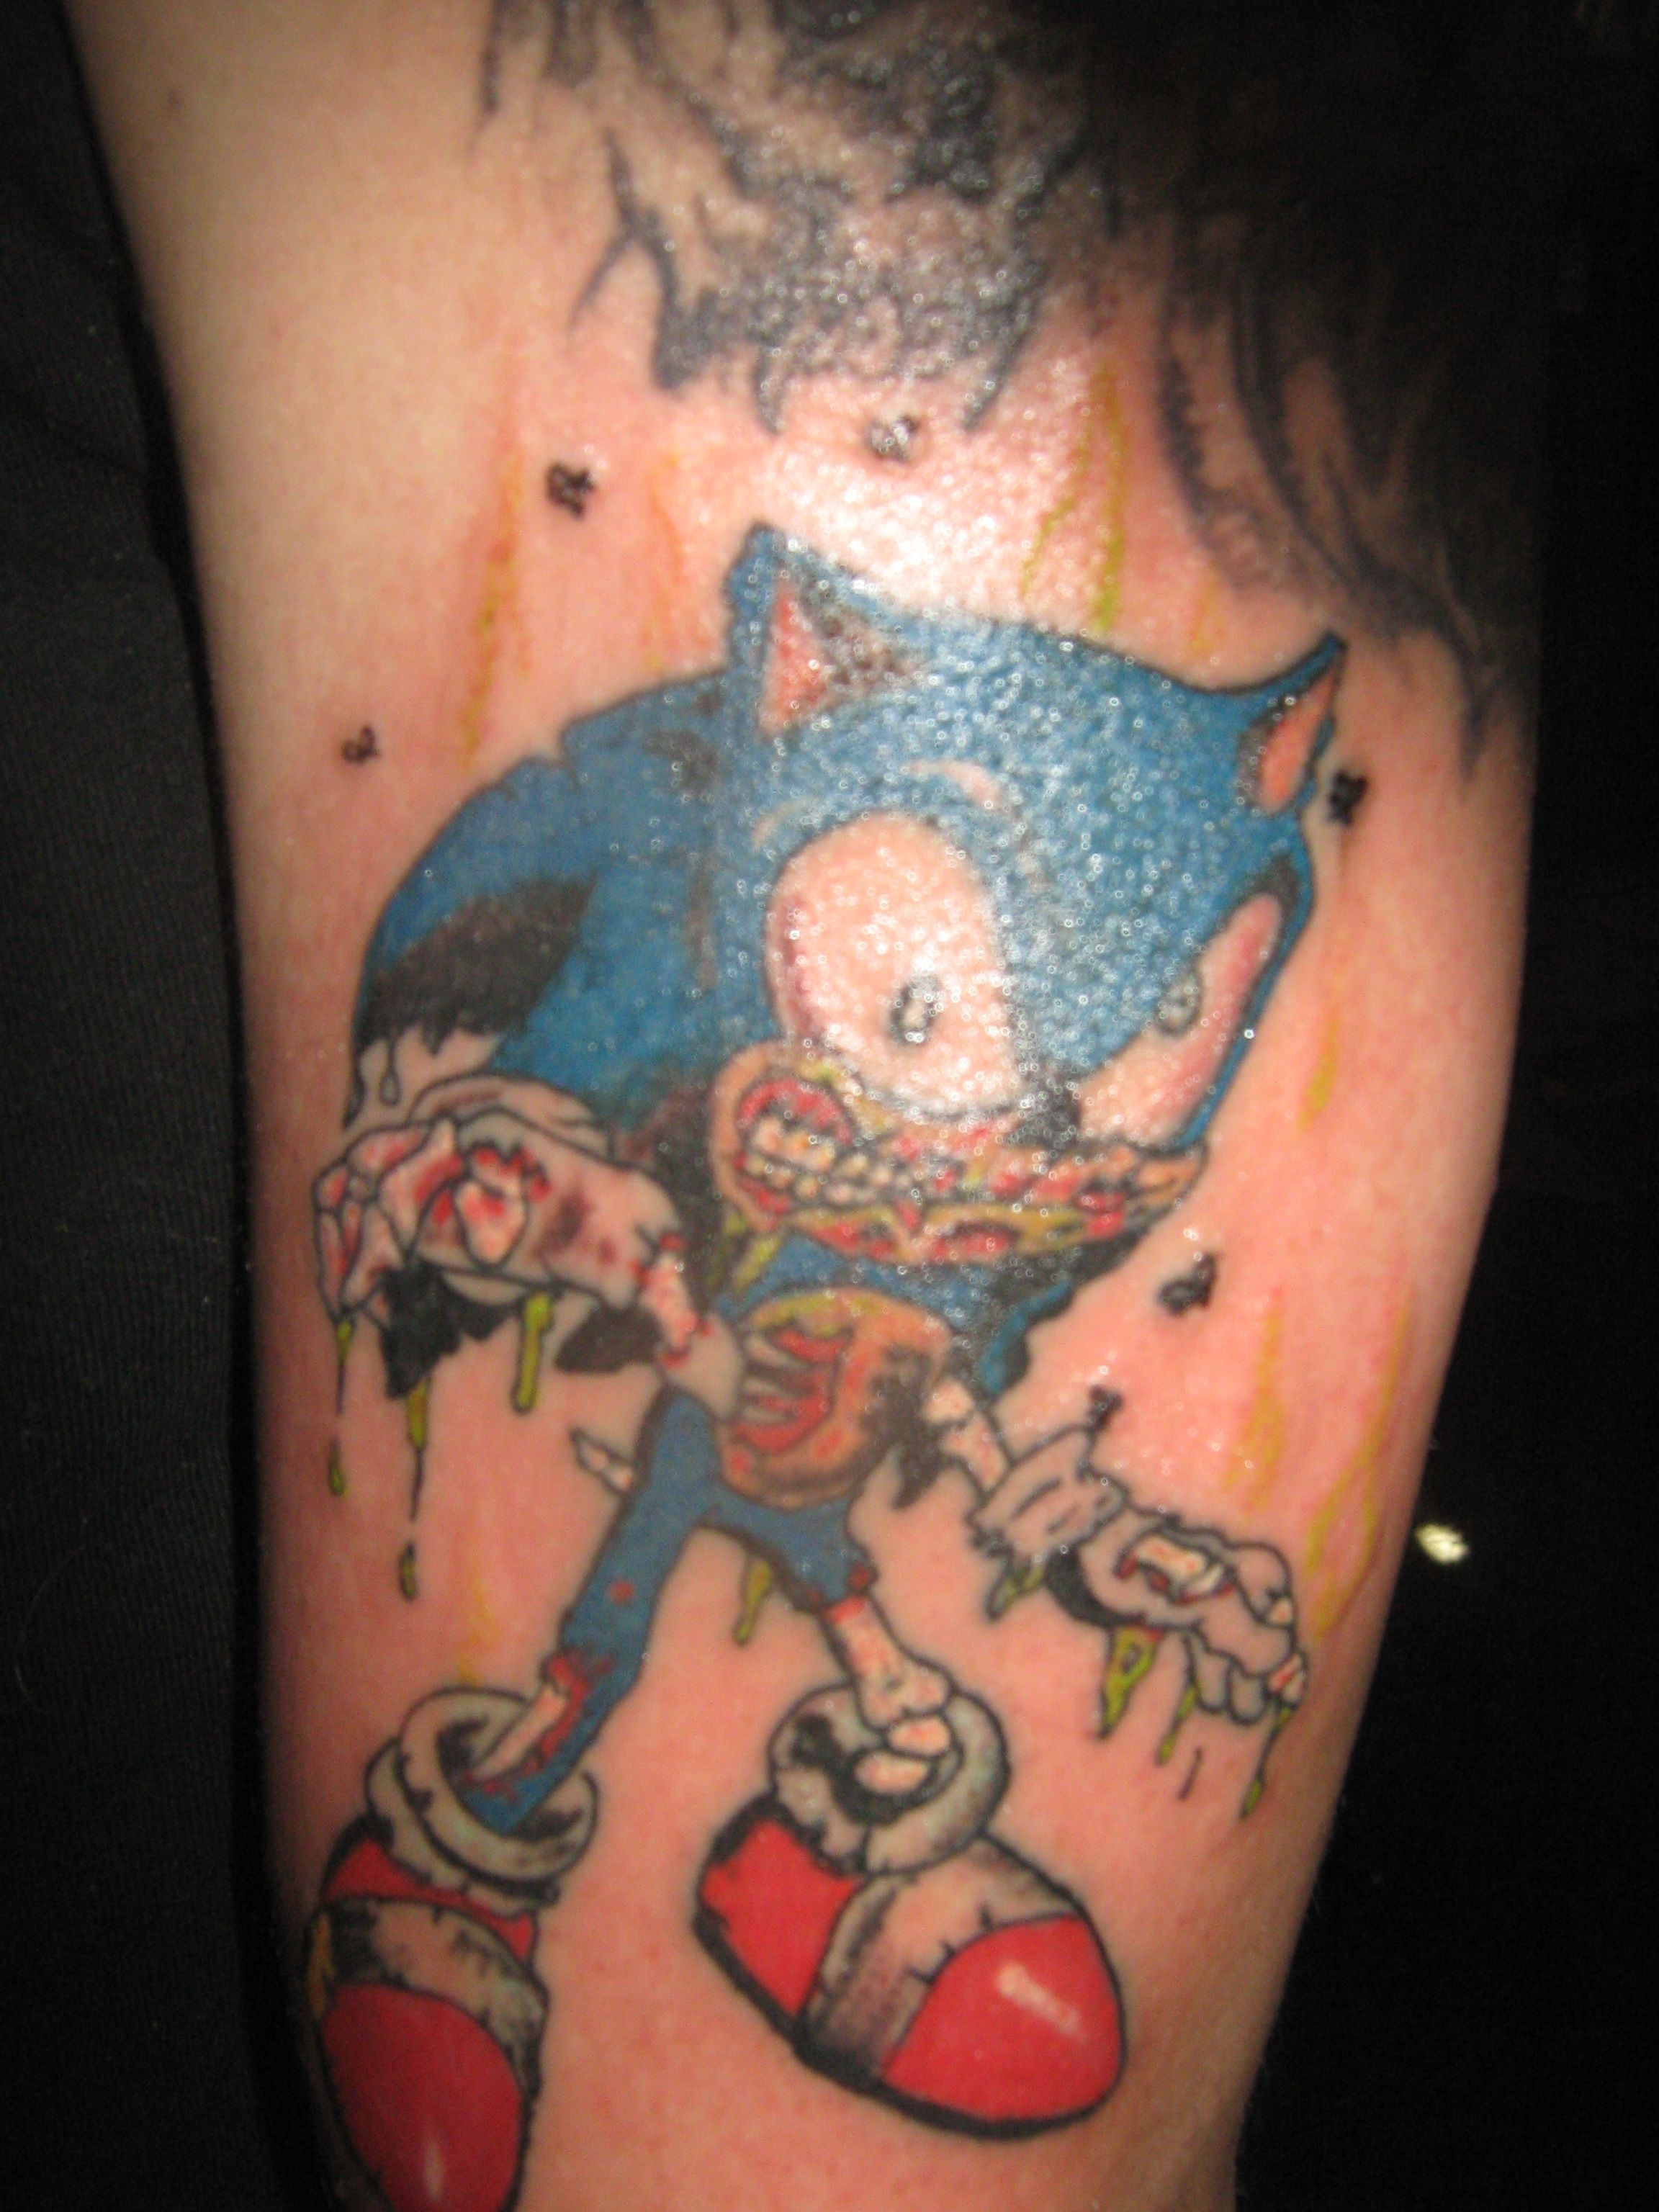 Zombie Sonic Hedgehog Tattoo Hedgehog Tattoo Tattoos Hedgehog